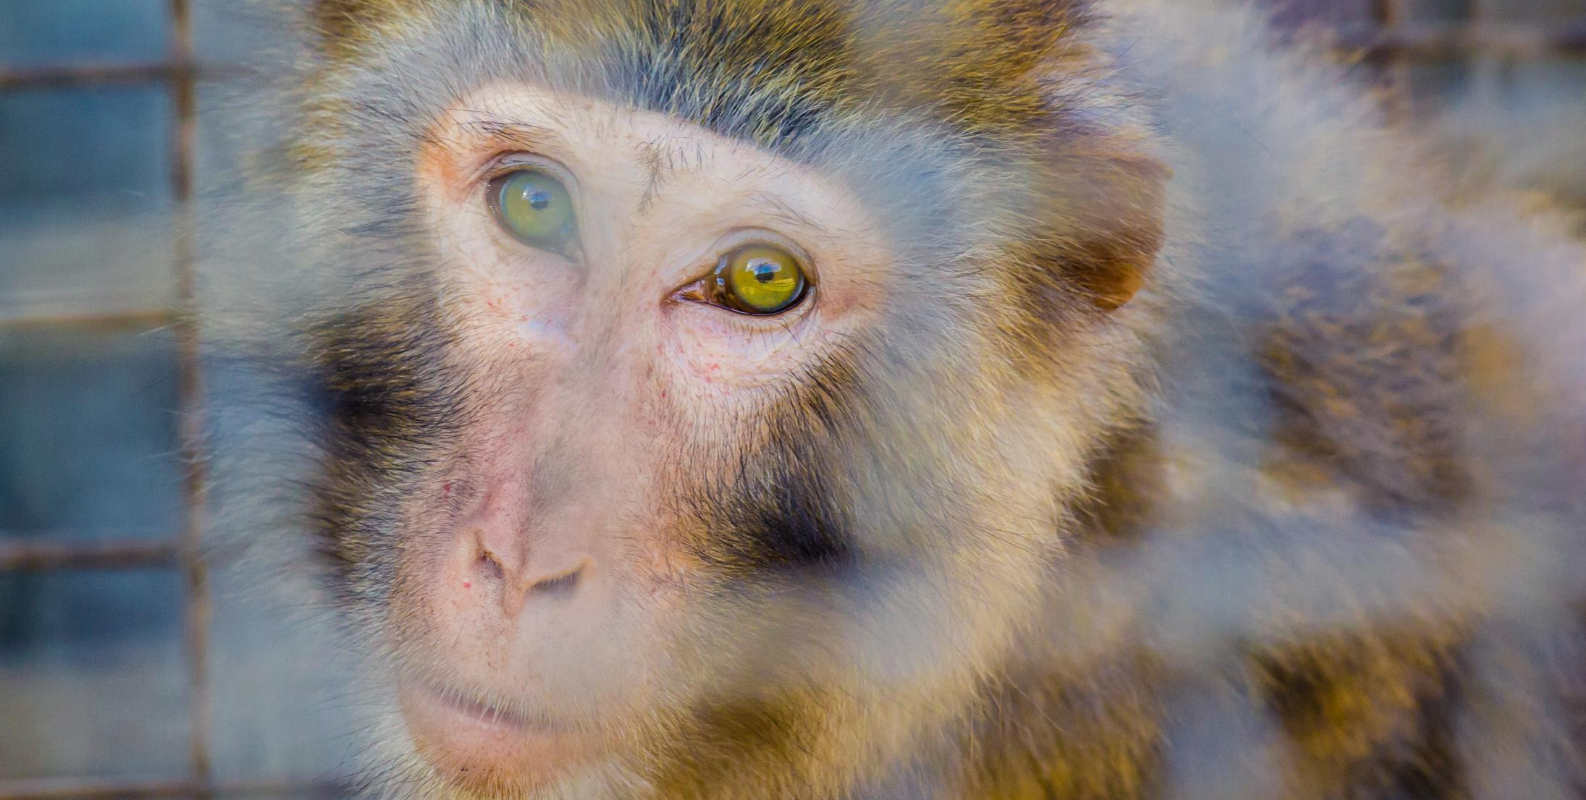 A rhesus macaque stares intently though cage bars